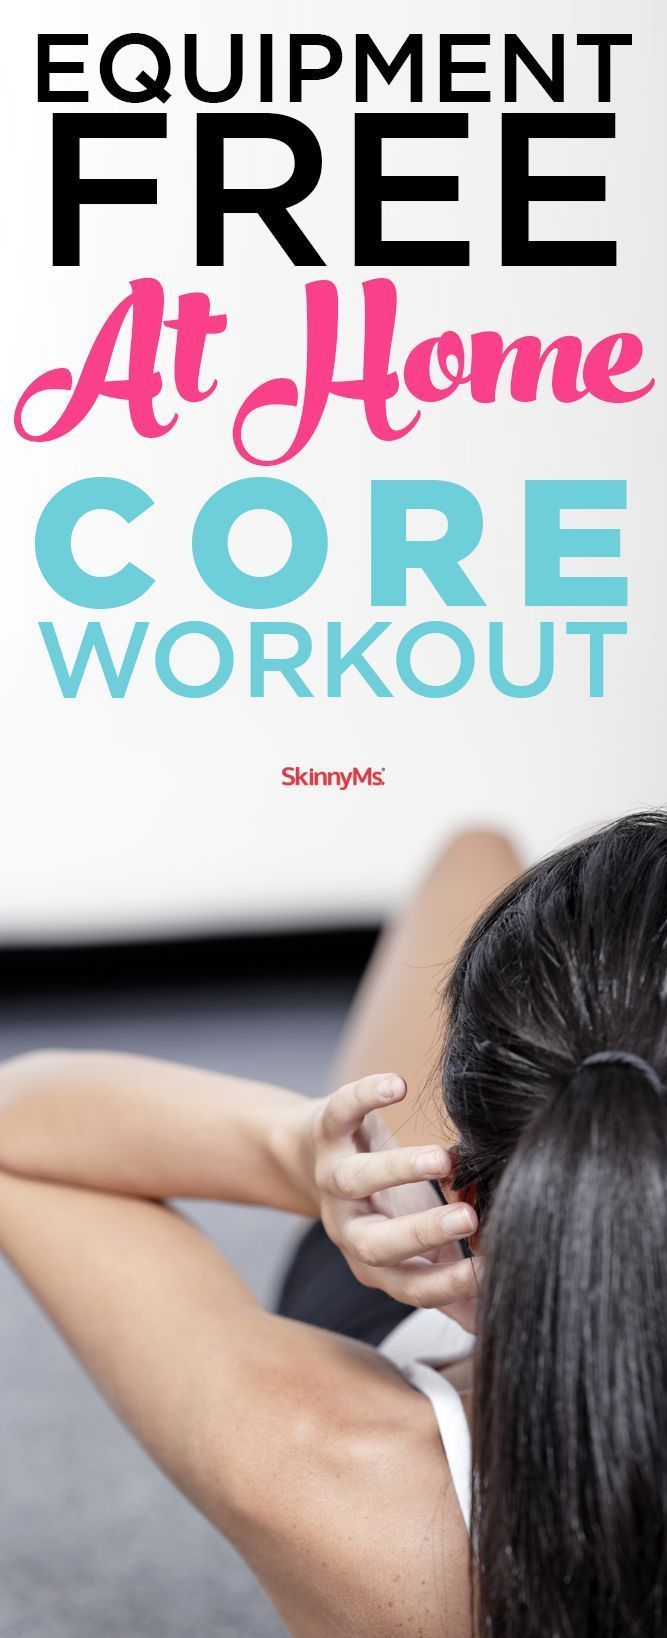 You don't always need a gym membership to get a great workout. Try this Equipment-Free At-Home Core Workout!  #skinnyms #fitness